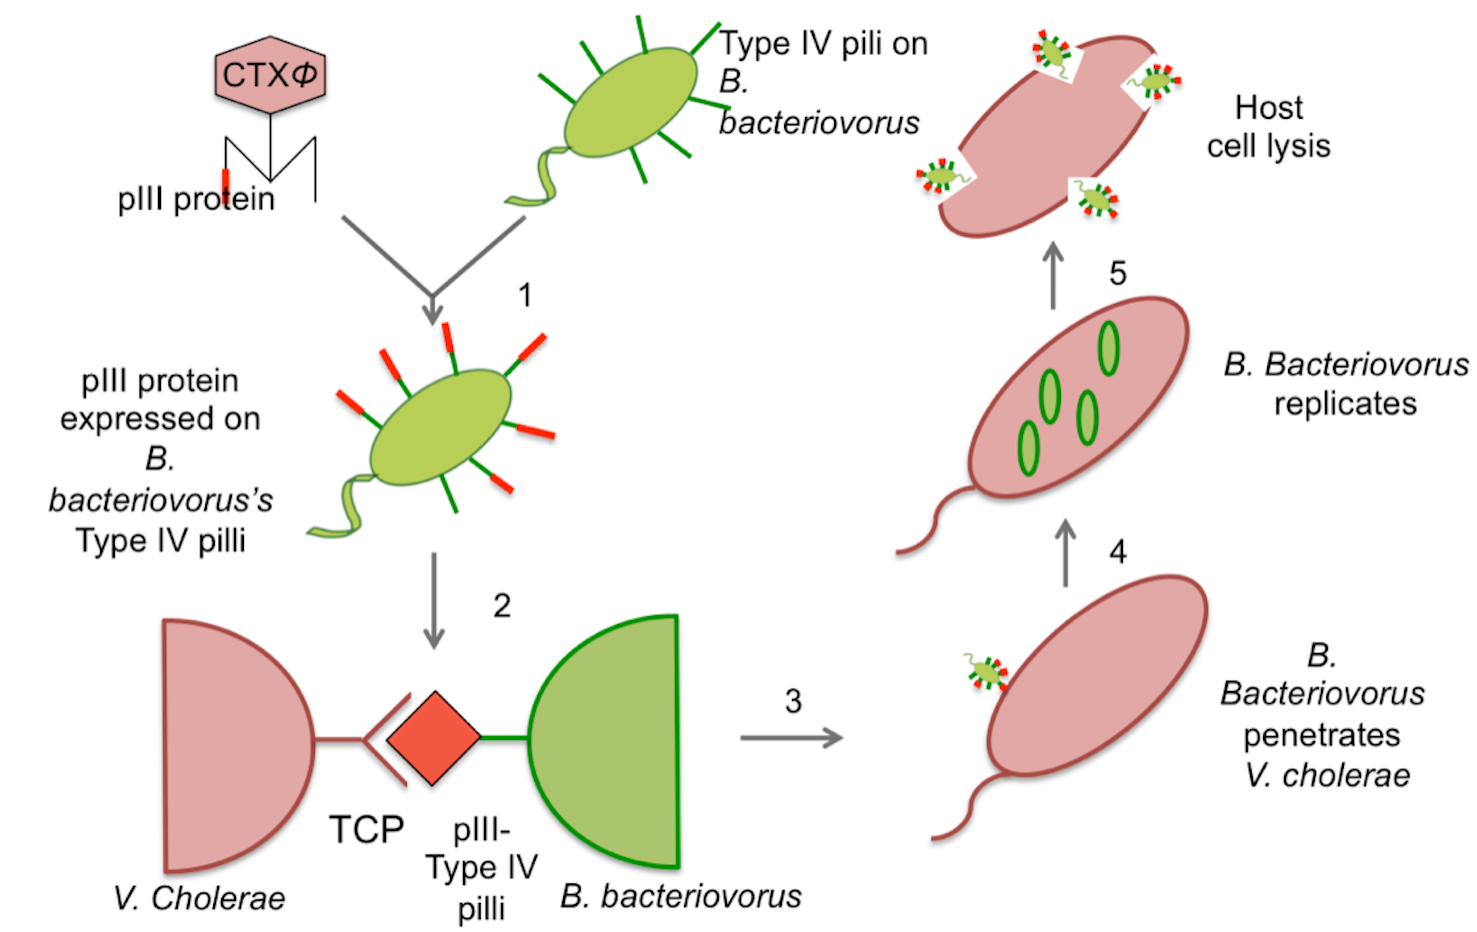 Designed a biologically engineered solution to combat anti-biotic resistant cholera     We stole the targeting mechanism from naturally occurring bacteriophages (a type of virus) to specifically target cholera   bacteria. We attached the targeting mechanism onto a bacterium that eats other gram negative bacteria, thereby creating a naturally occurring anti-bacterial therapeutic.